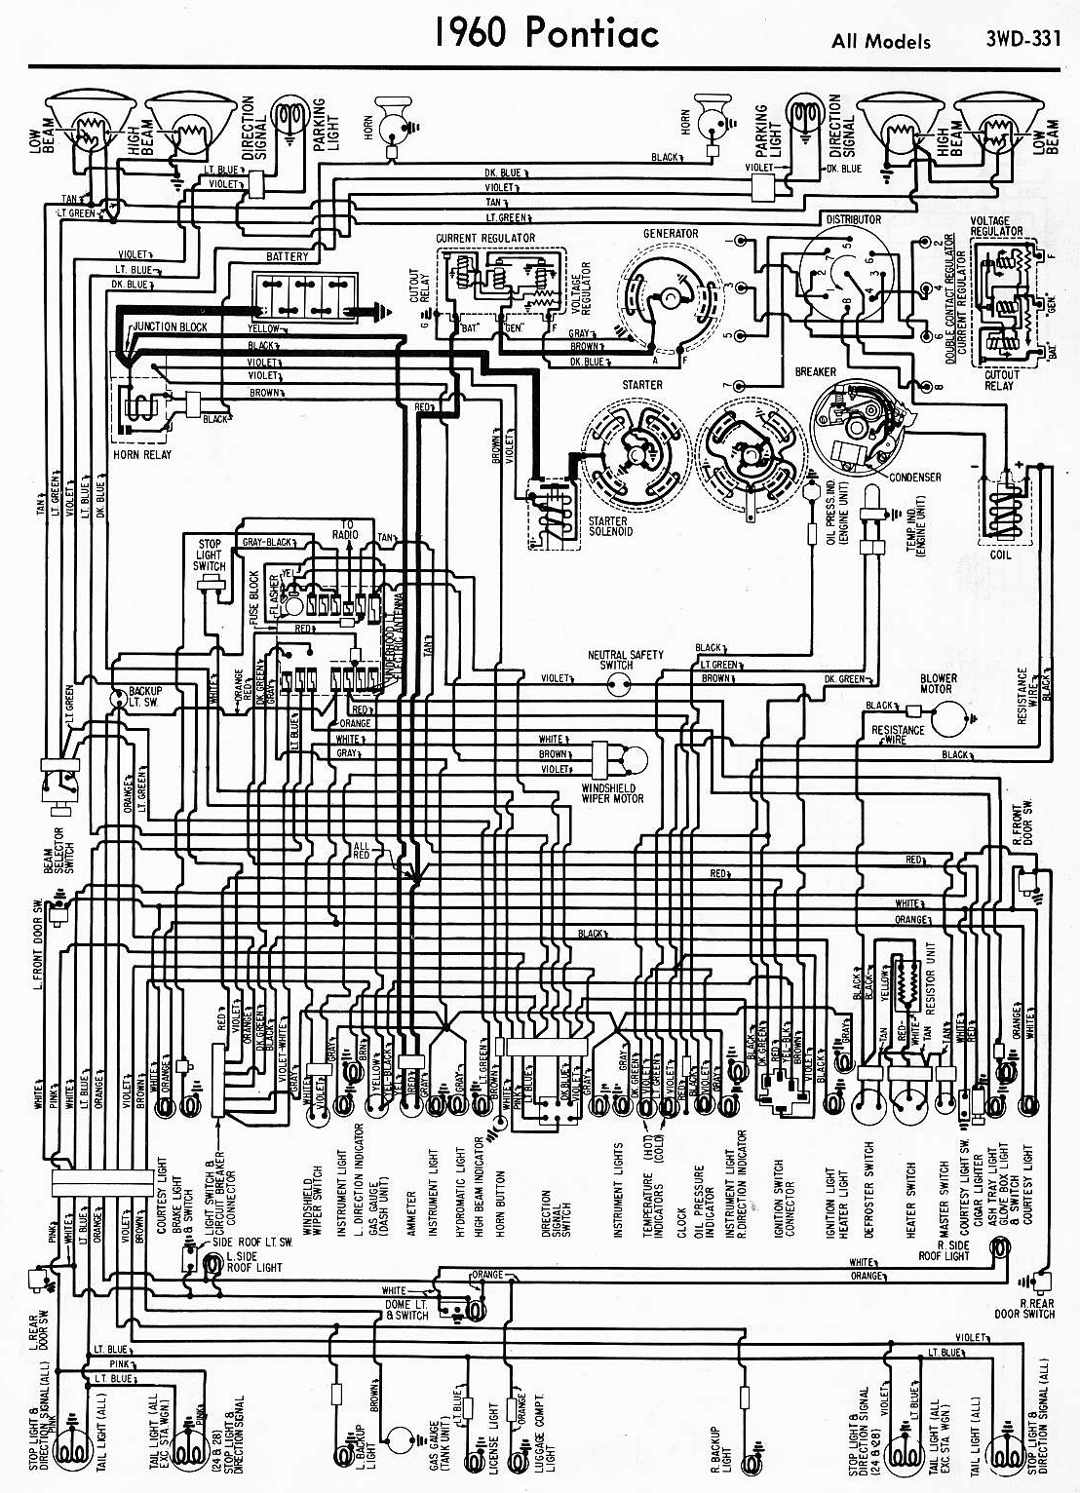 Old Fashioned Dometic Wiring Diagram 293 21 77 Motif - Wiring ...